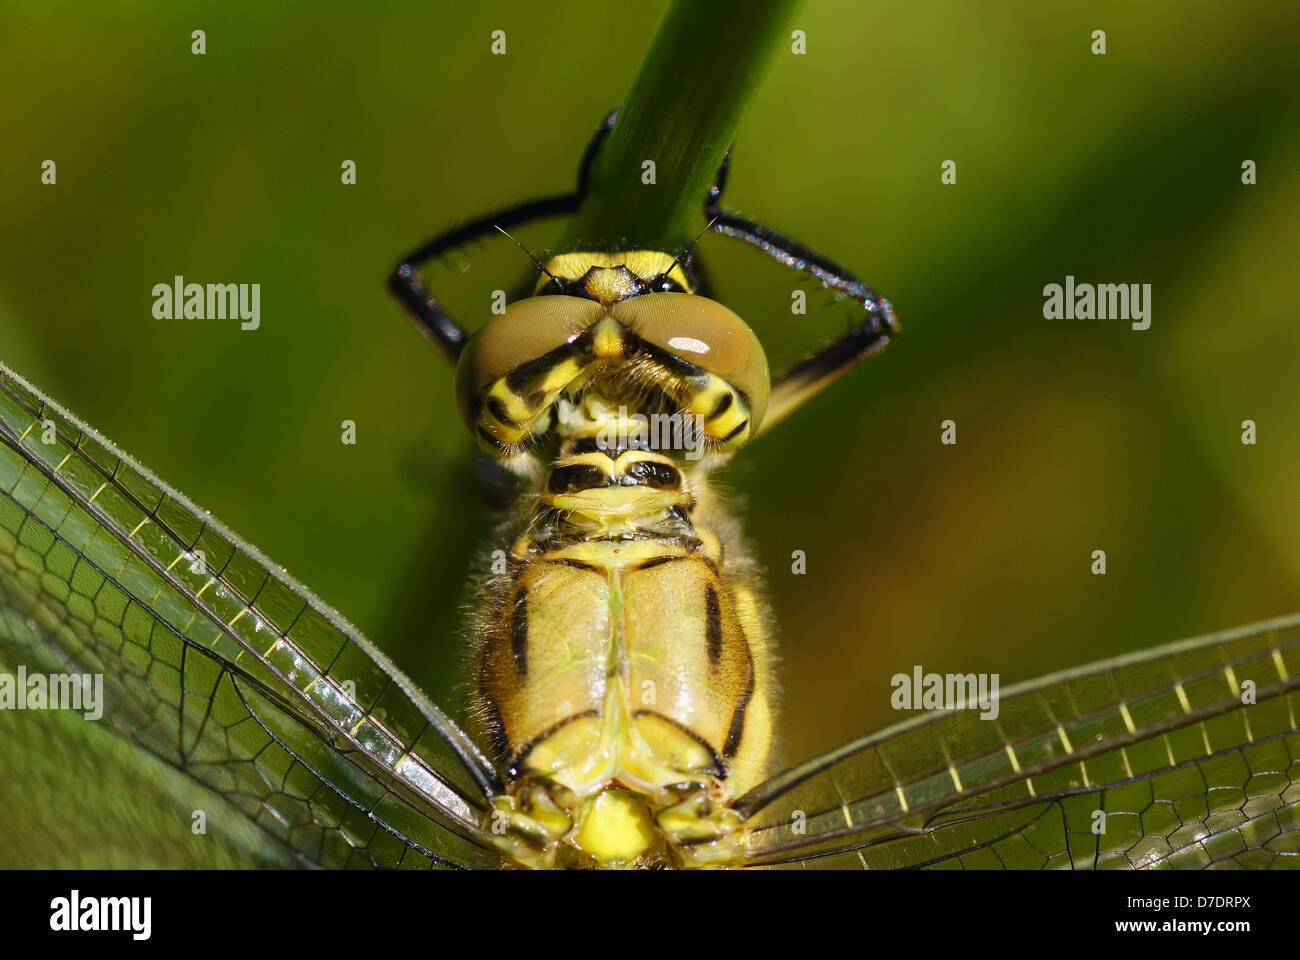 big dragonfly siting on the green grass - Stock Image